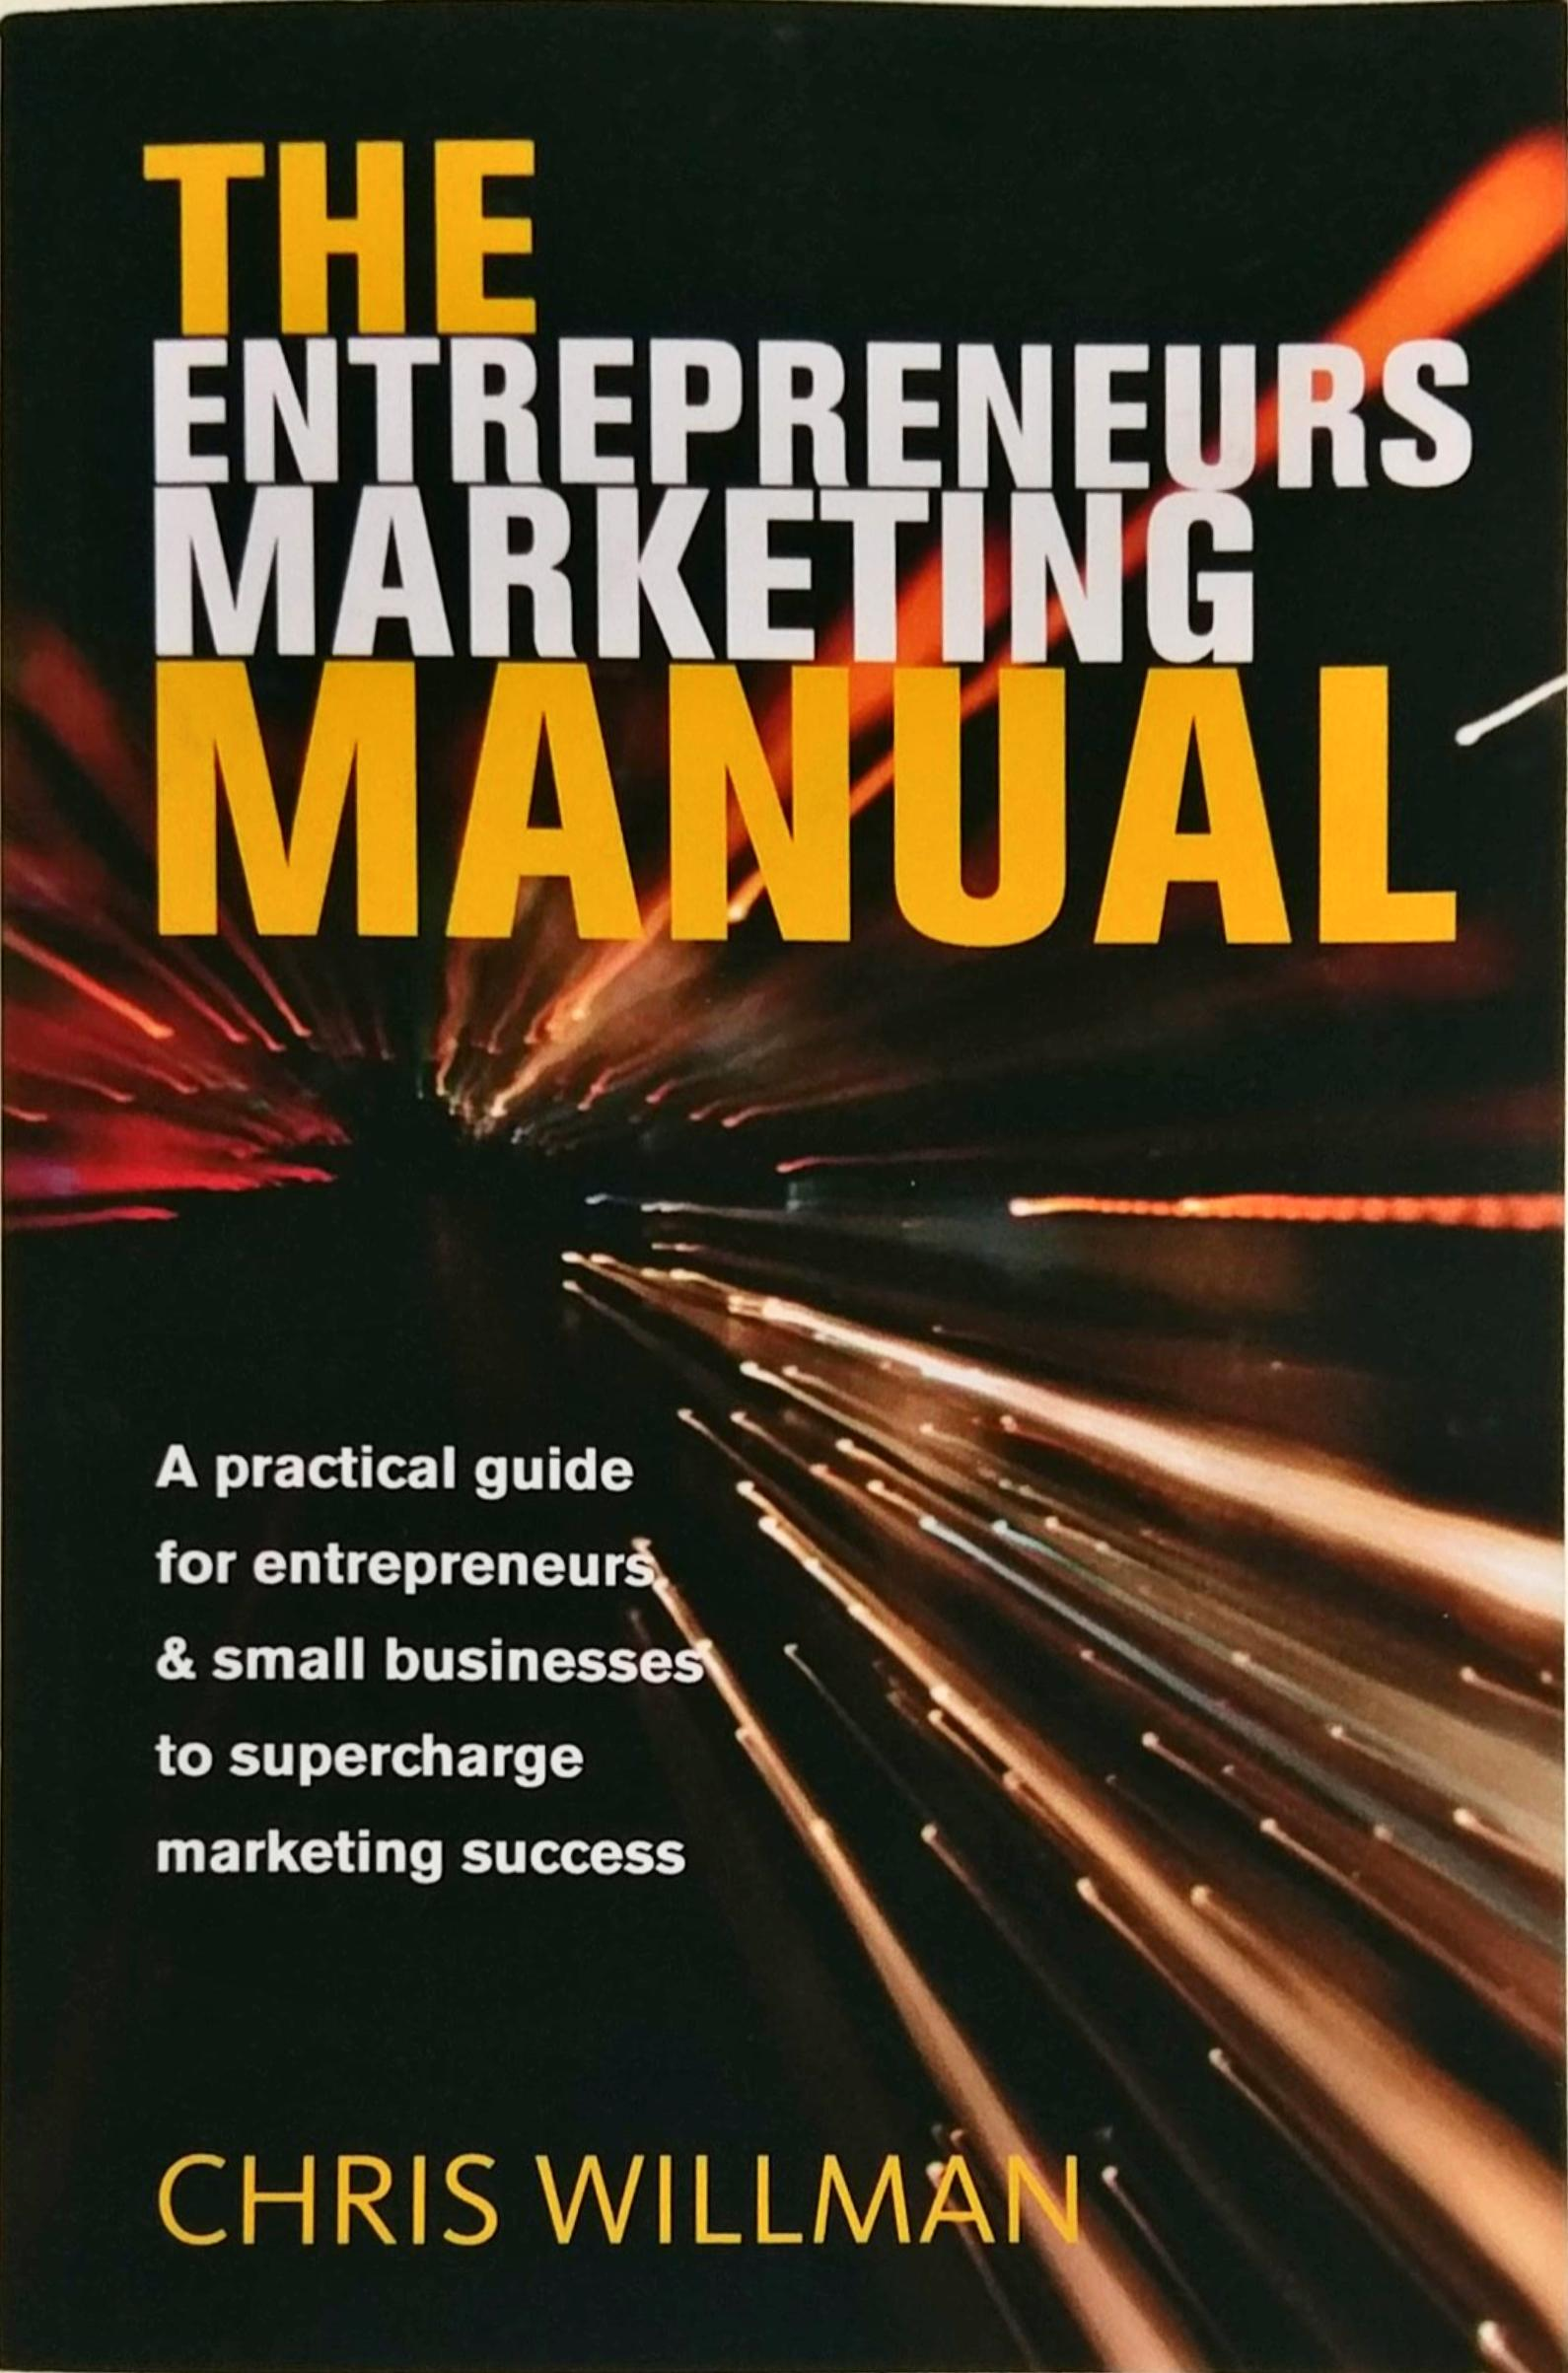 marketing manual cover